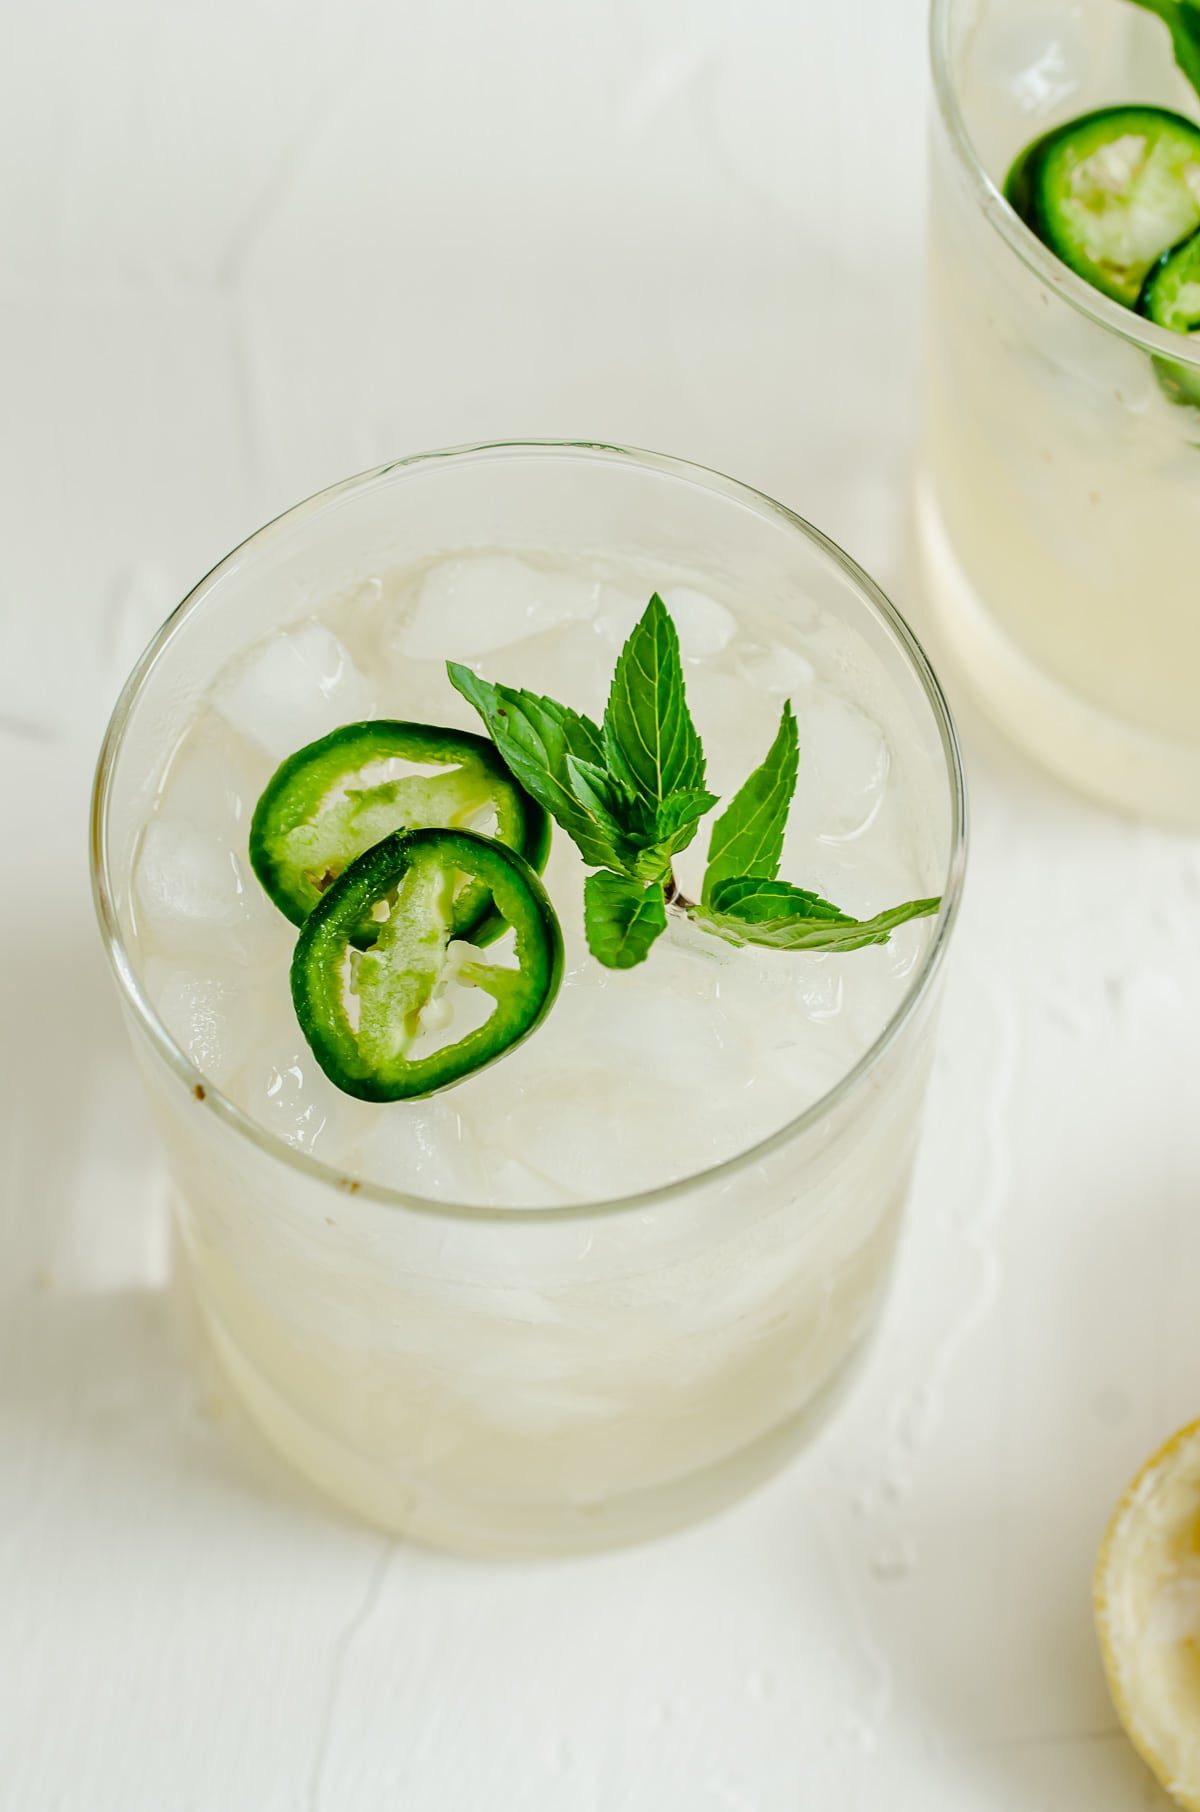 A glass of a lemon beverage garnished with jalapeño slices and a mint sprig.